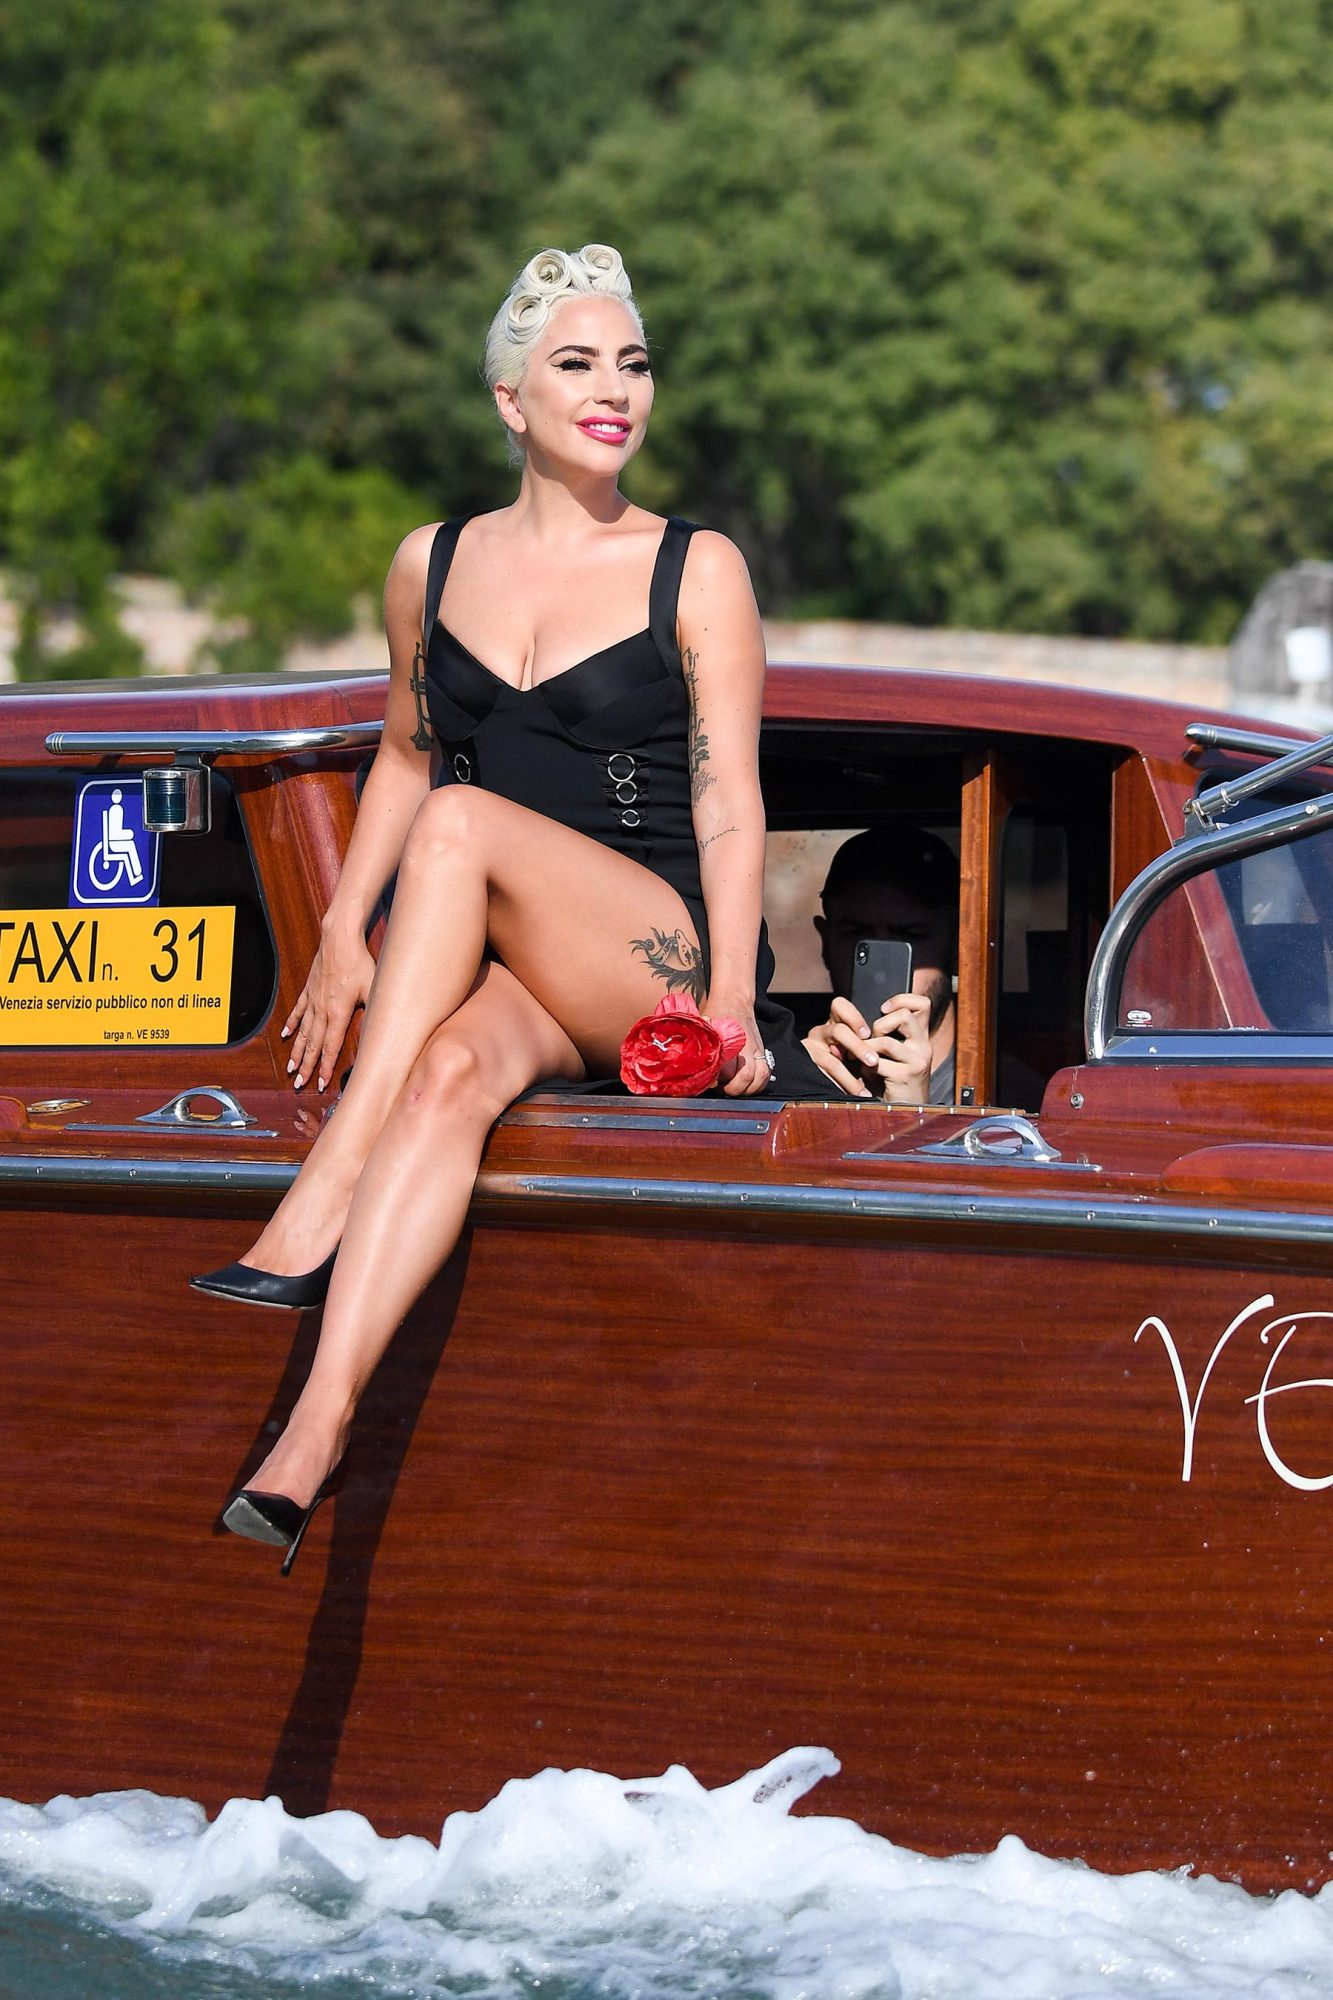 Lady Gaga spotted on a taxi boat in Venice